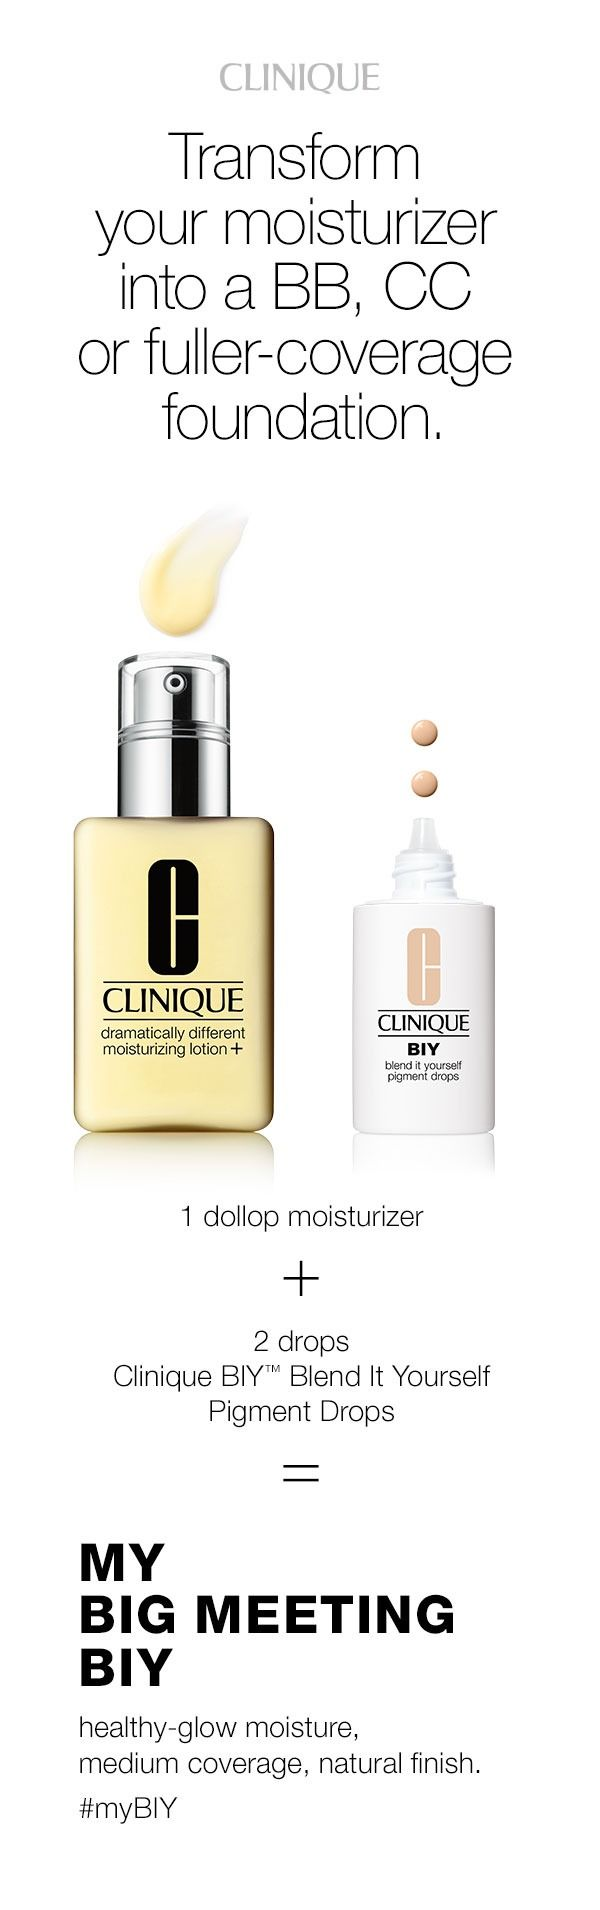 Create customizable coverage with Clinique BIY Blend It Yourself Drops. For healthy-glow moisture with medium coverage, combine 1 dollop Dramatically Different Moisturizing Lotion+ with 2 drops of BIY Blend It Yourself Pigment Drops.